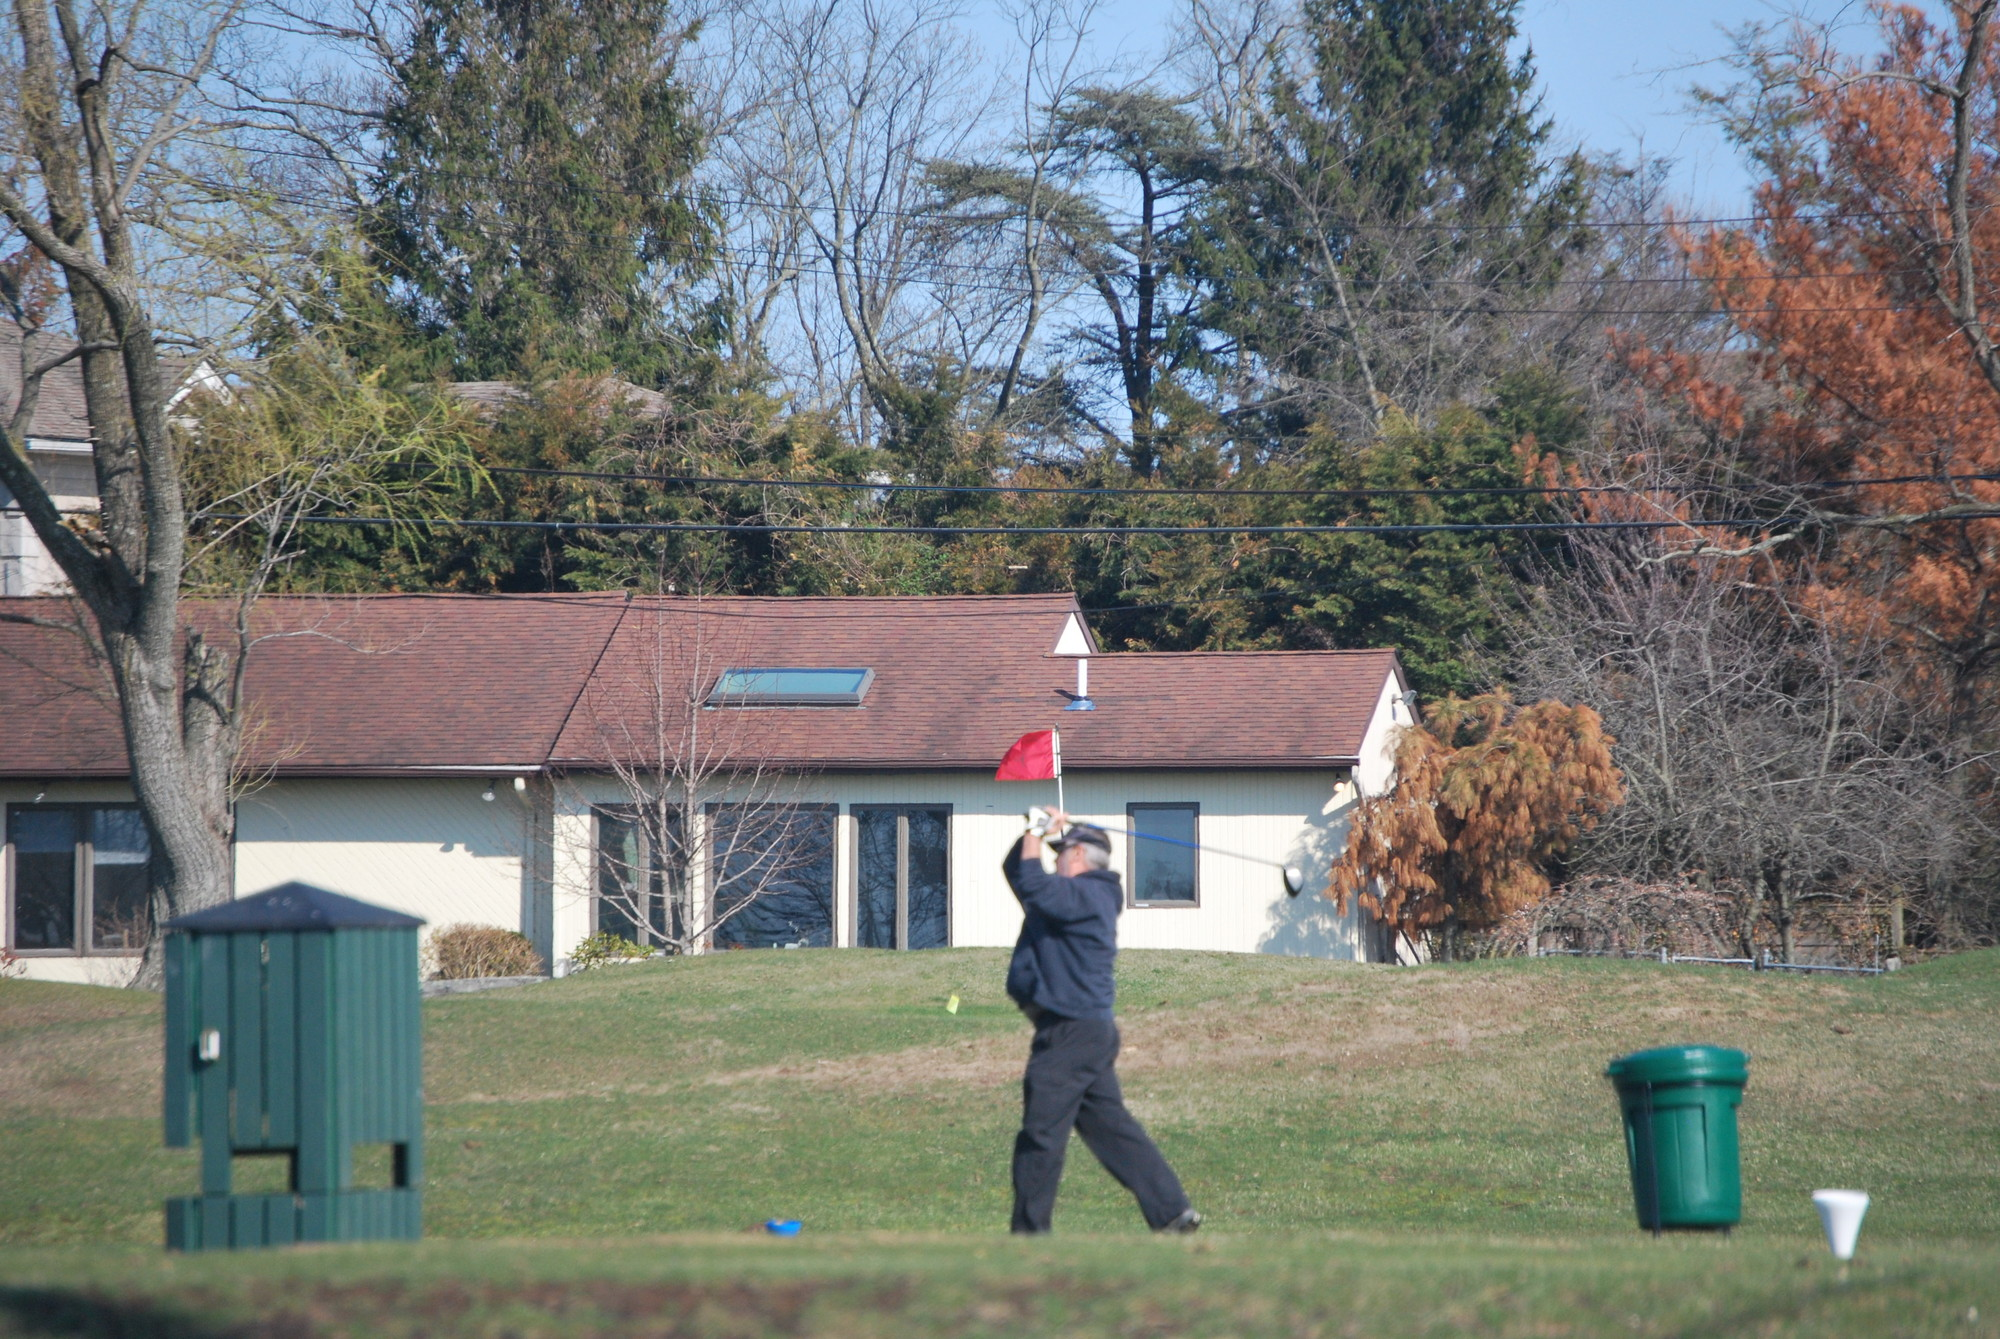 Village and club officials say Lawrence's golf course is in good shape. A golfer took advantage of a warm day on April 15 as he hit a shot on the 16th tee.